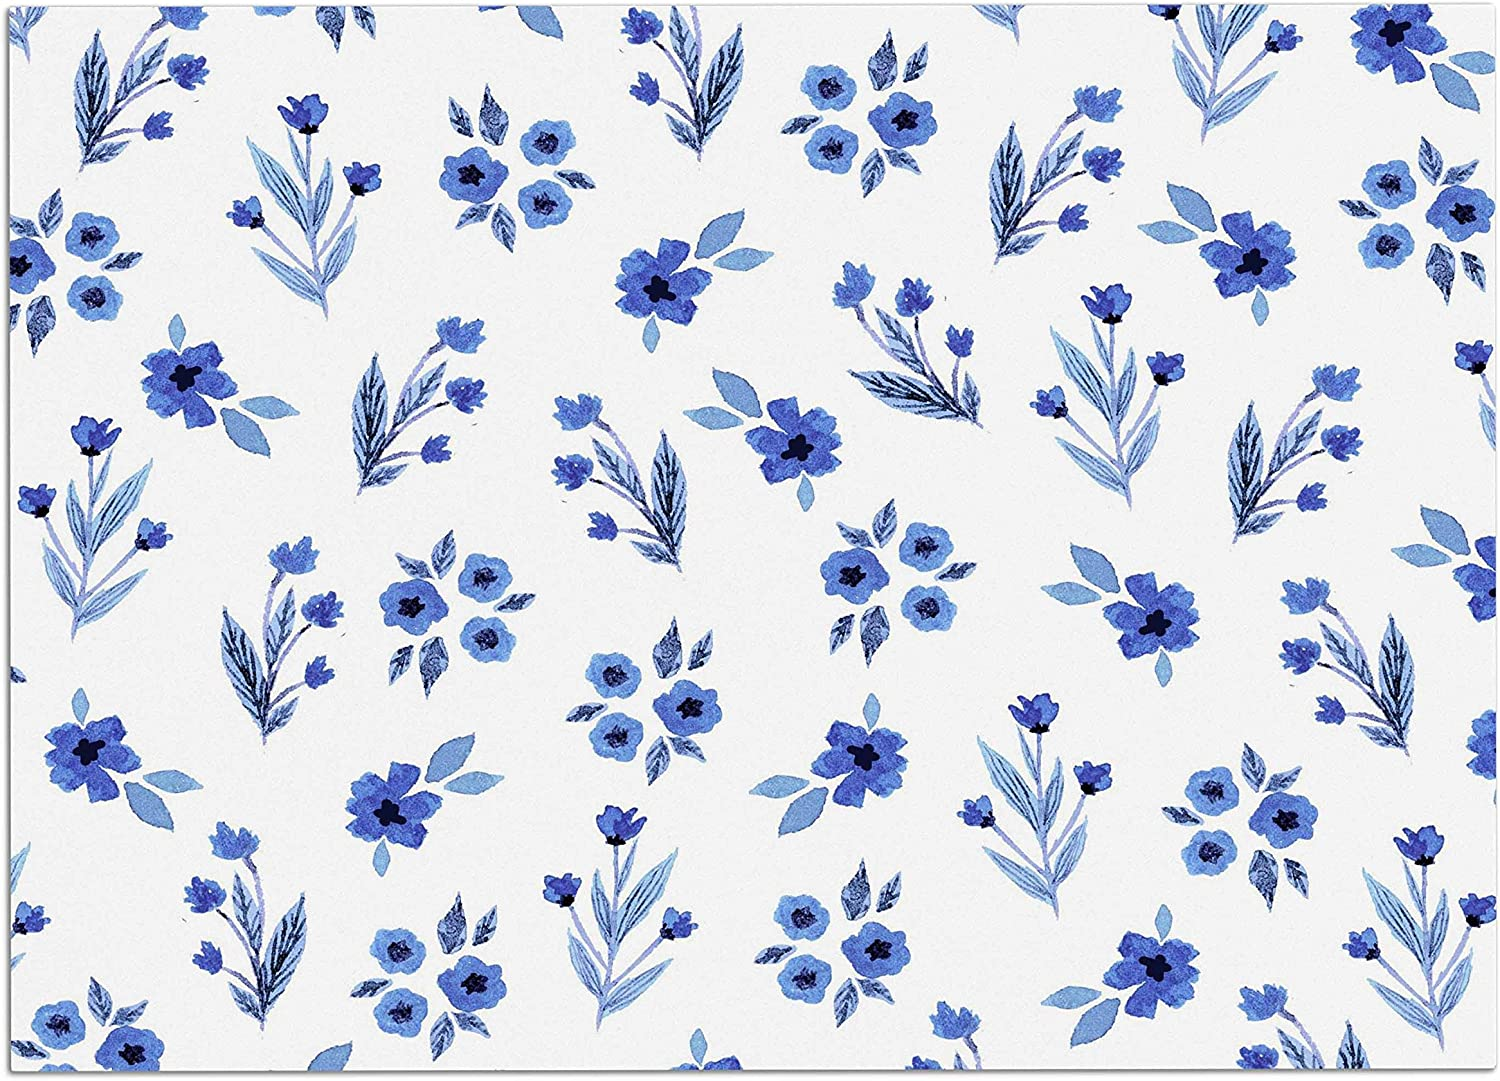 KESS InHouse Starwberringo bluee Floral Pattern White bluee Dog Place Mat, 24  x 15